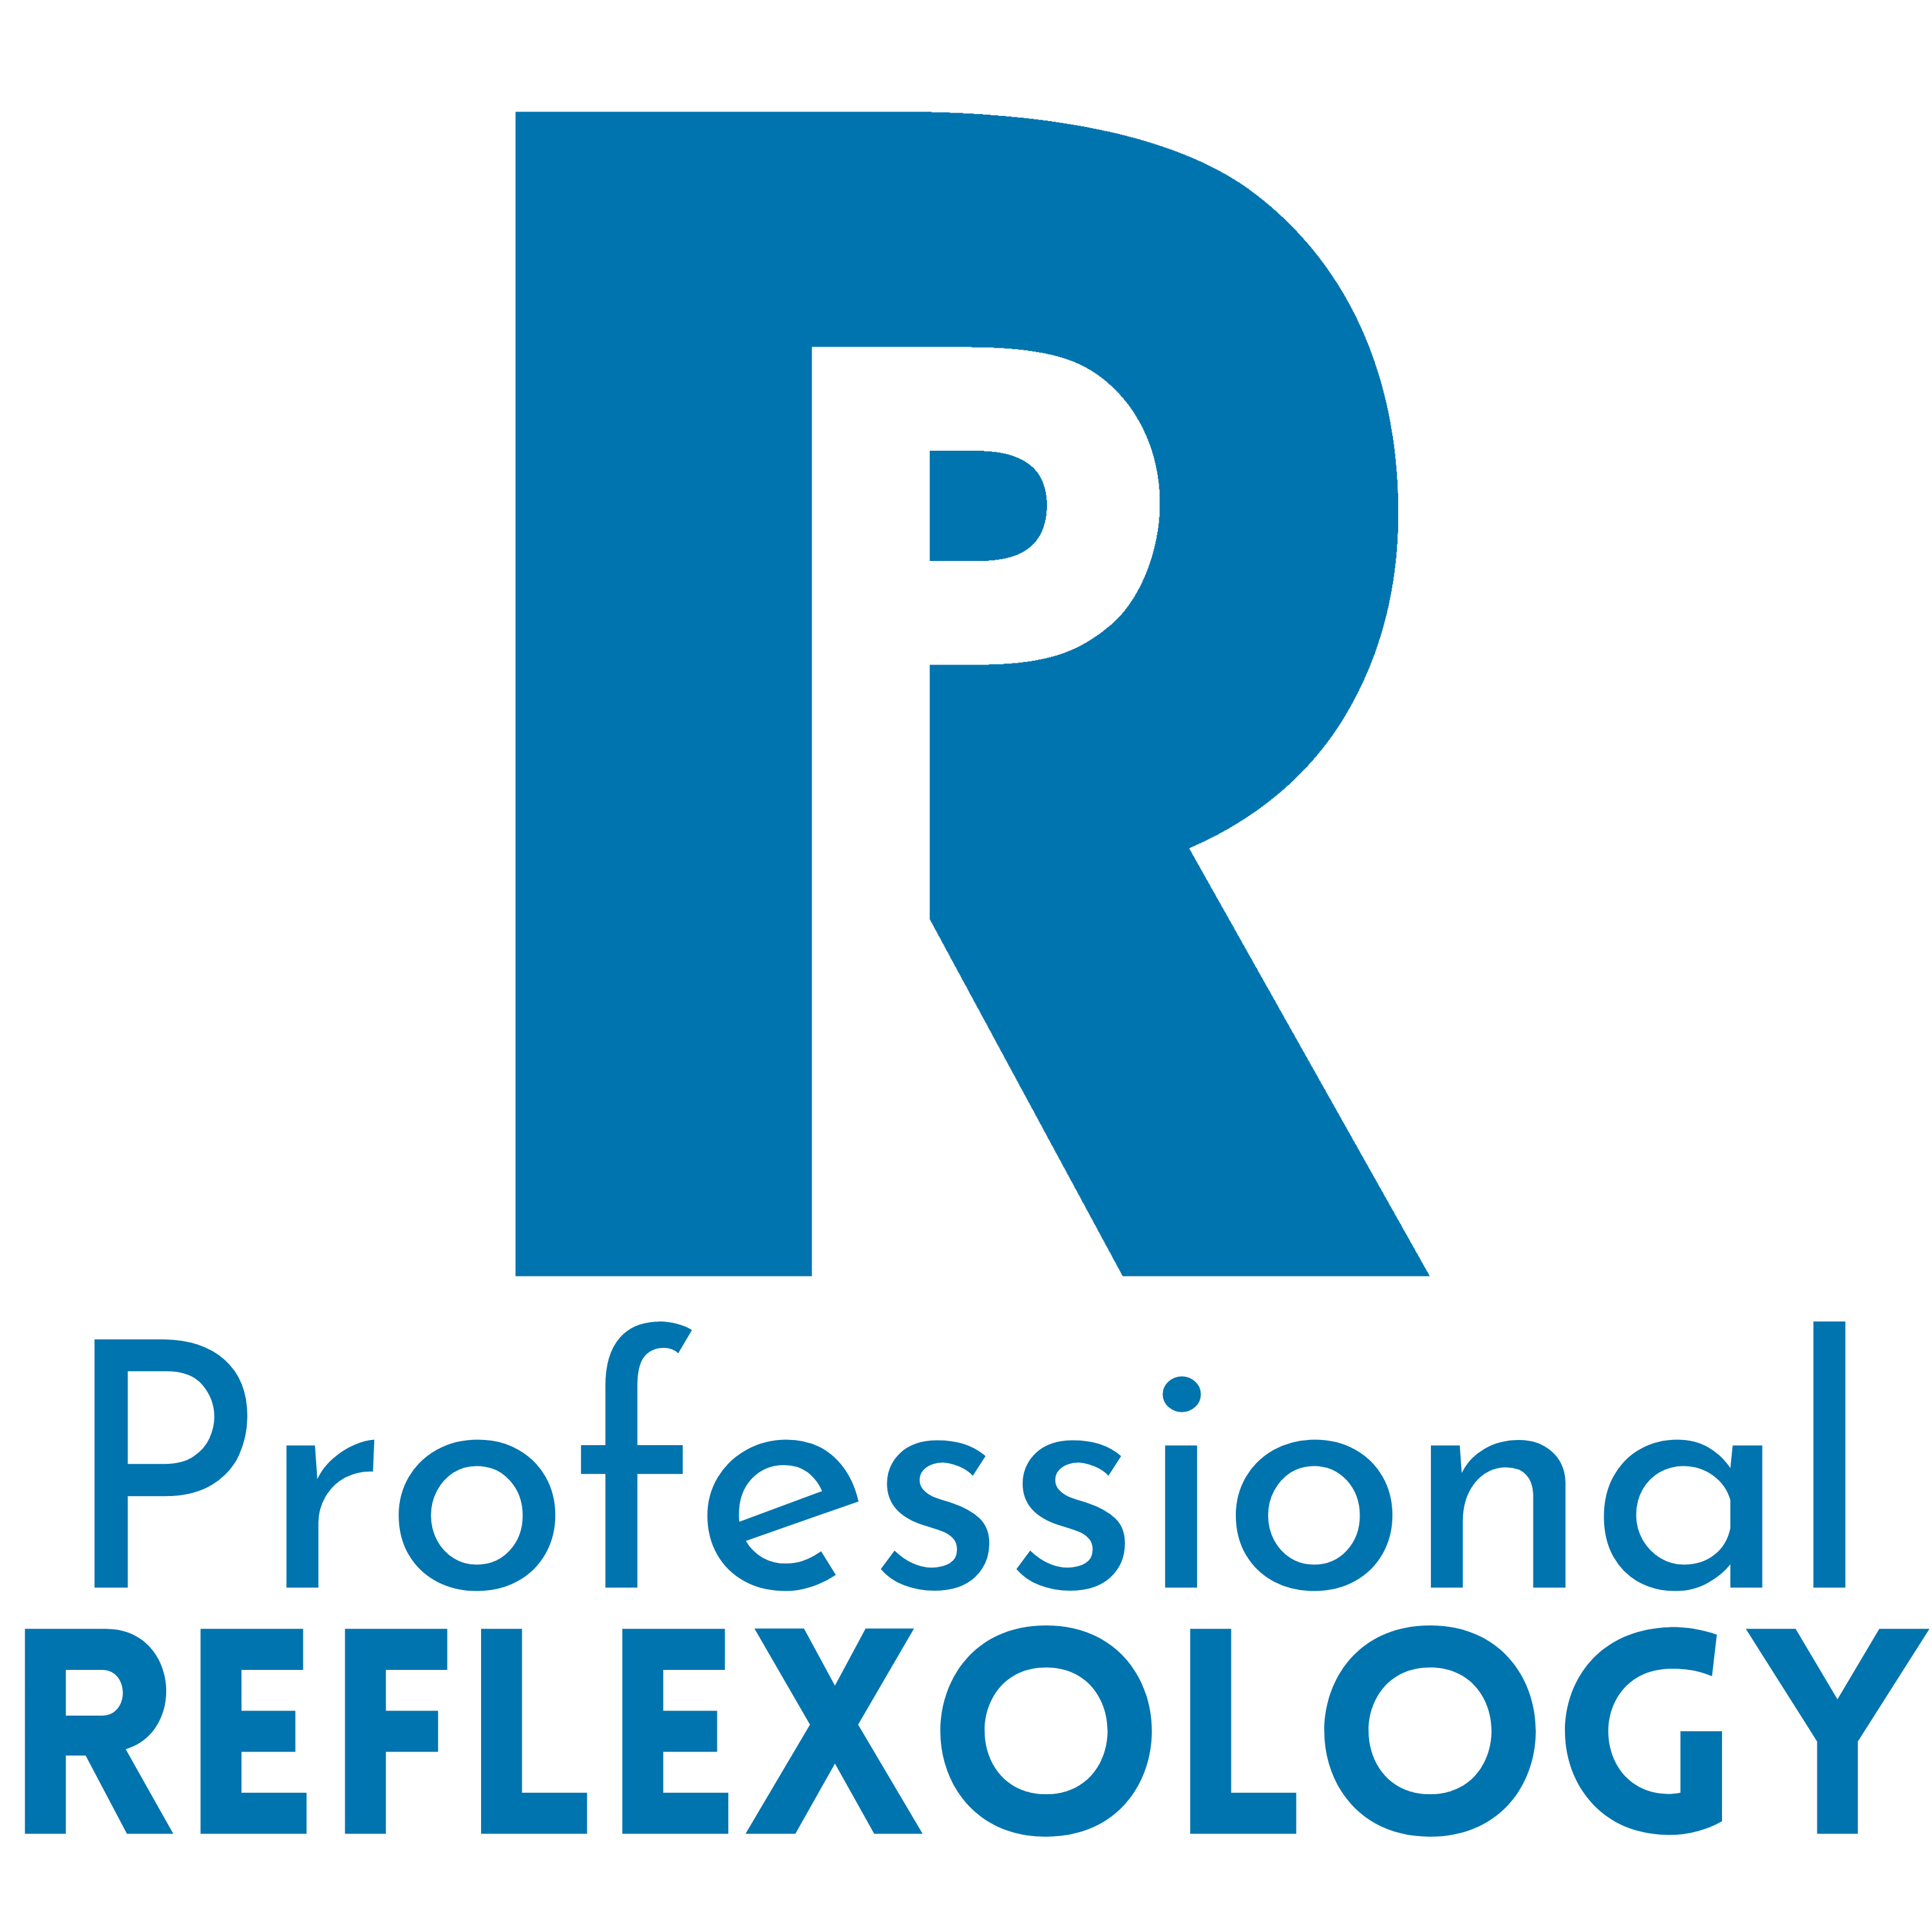 https://www.simplyholistics.co.uk/wp-content/uploads/2021/02/Professional_Reflexology_Logo_Square_Blue.png